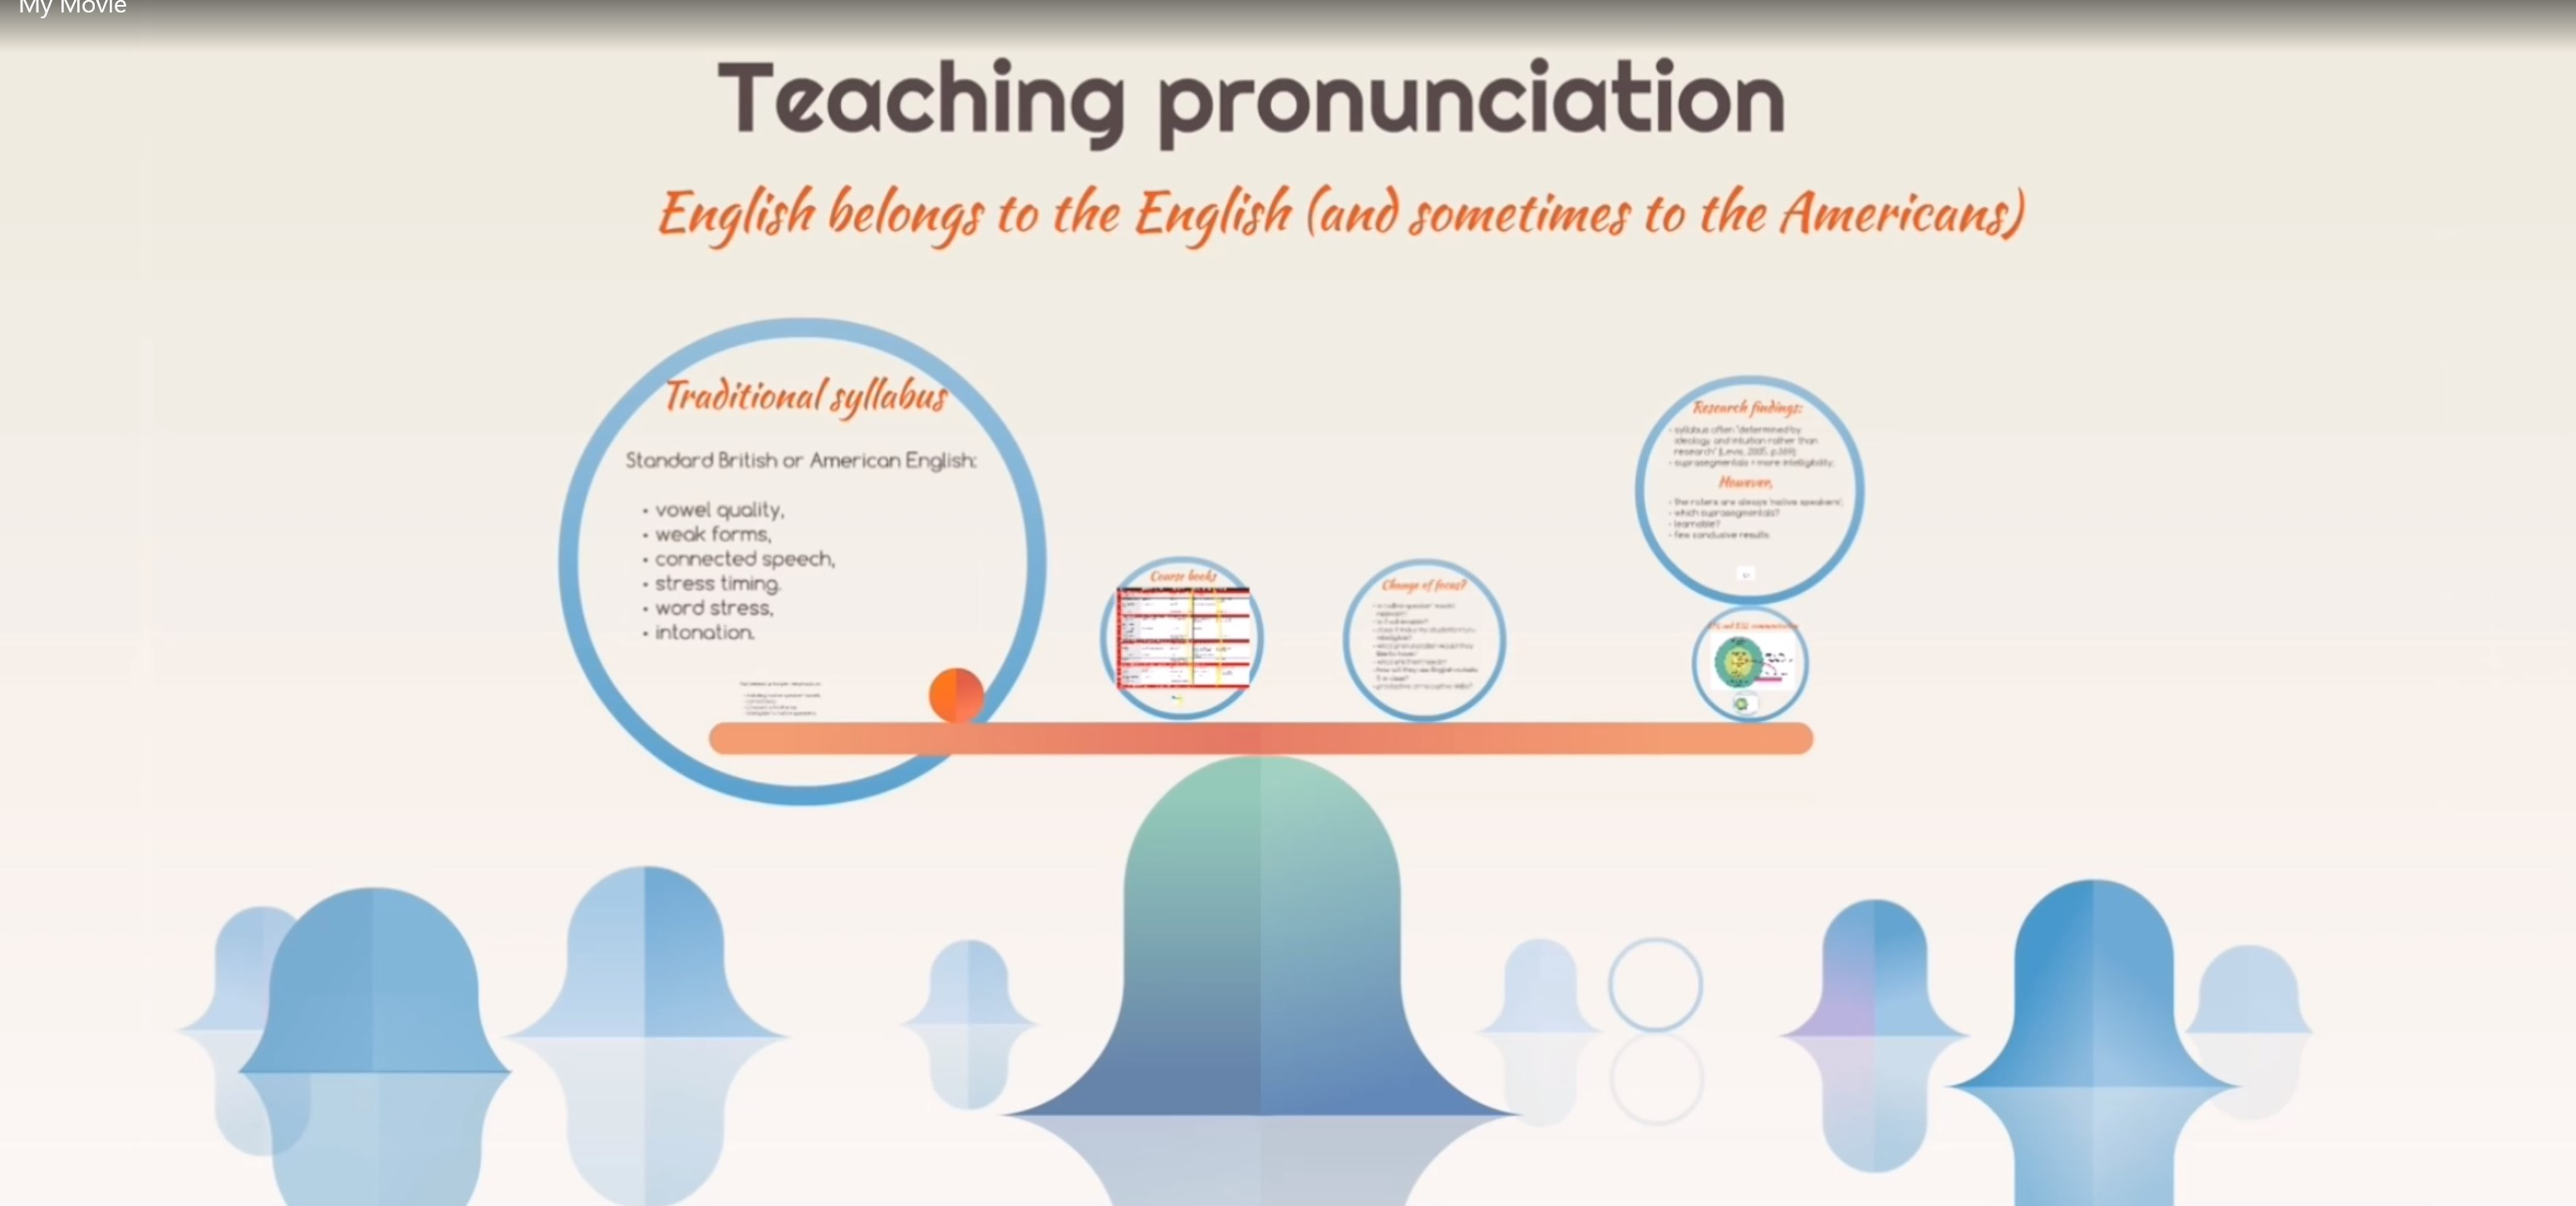 Lecture 2: Current pronunciation teaching practice: English belongs to